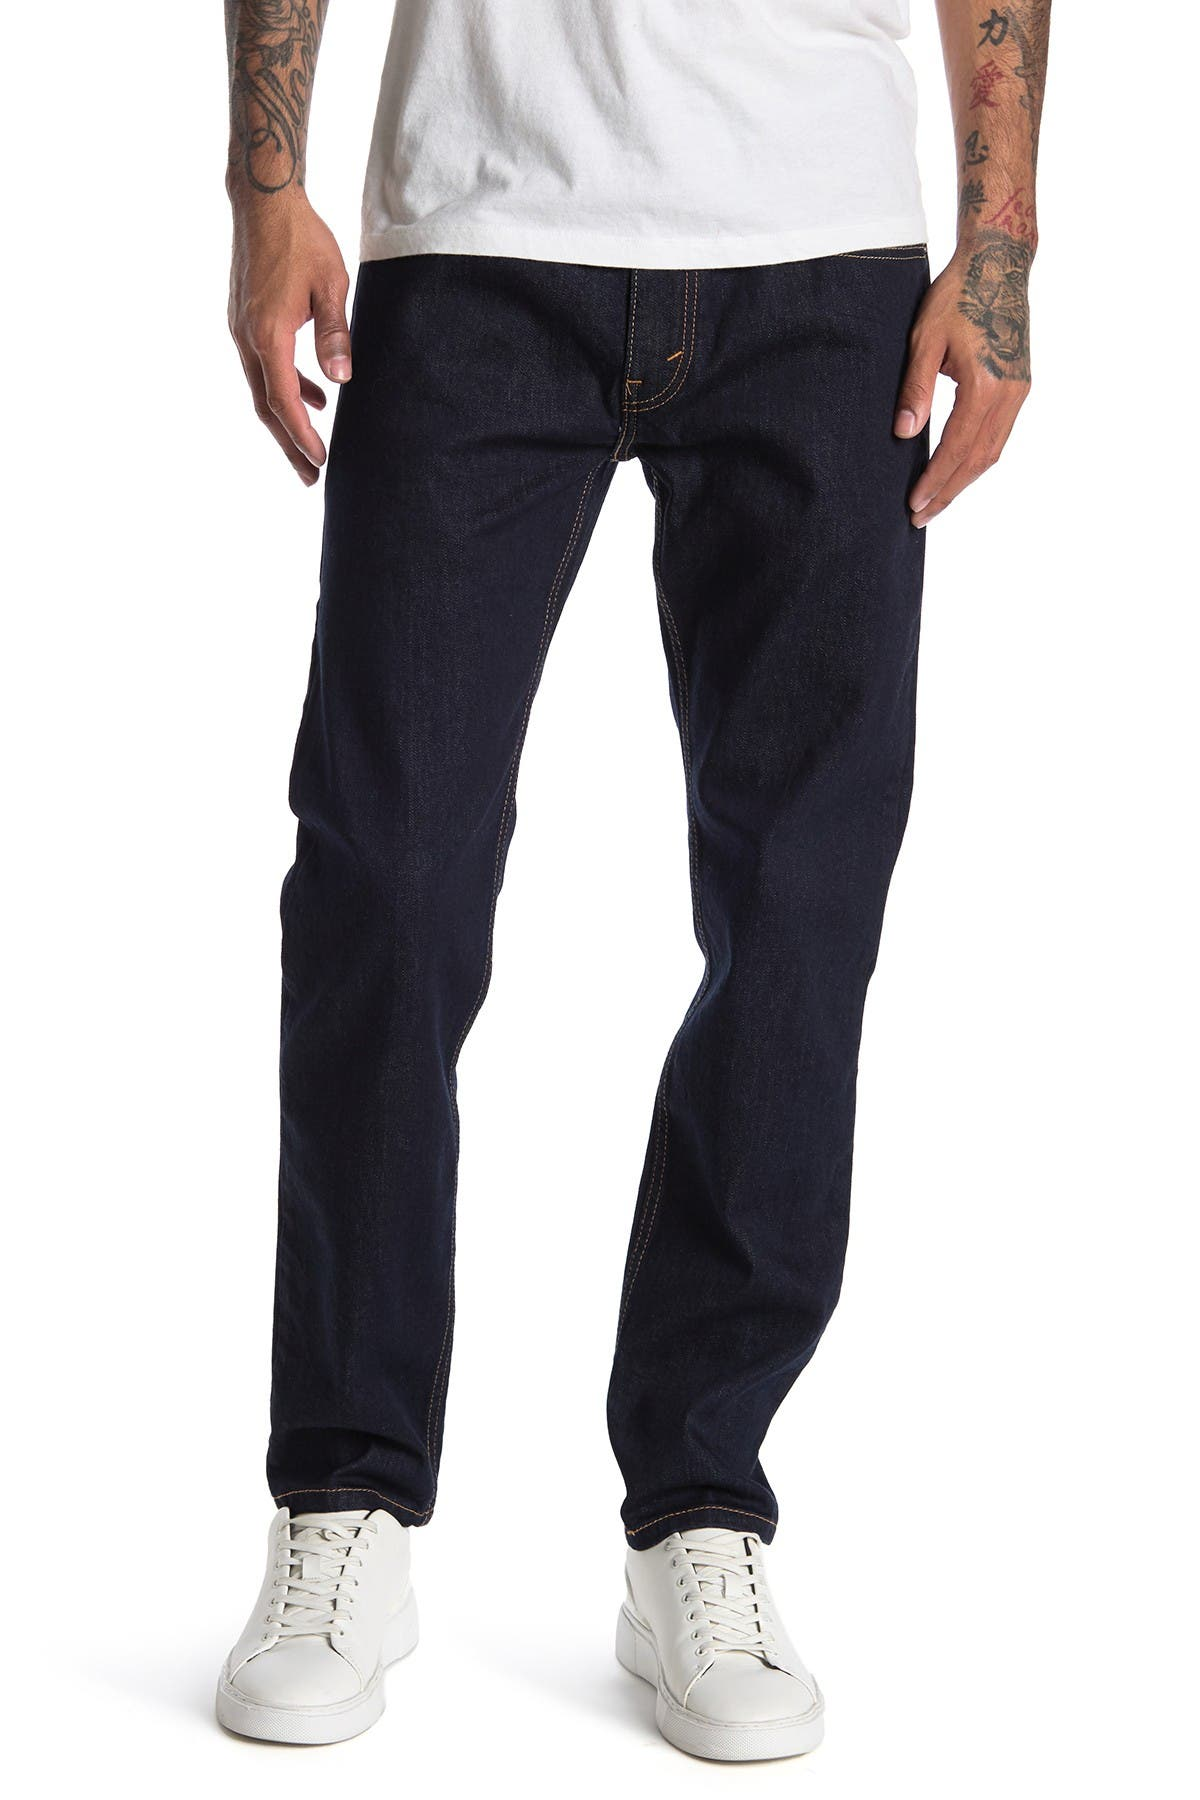 "Image of Levi's 502 Tapered Leg Jeans - 30-34"" Inseam"